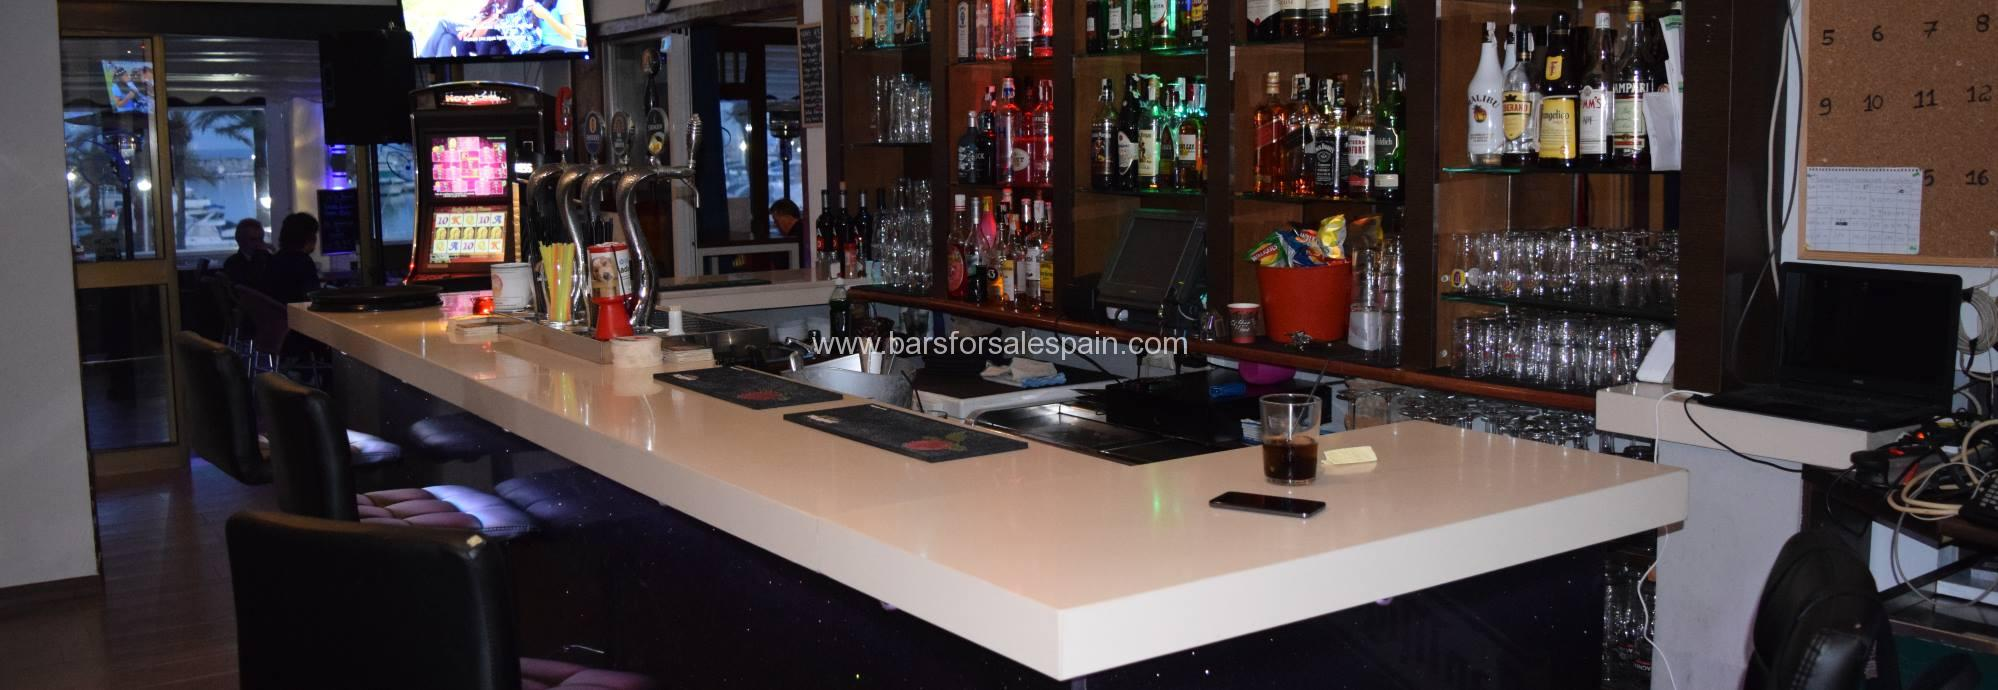 Bar and Restaurant For Sale in Duquesa, Manilva, Spain